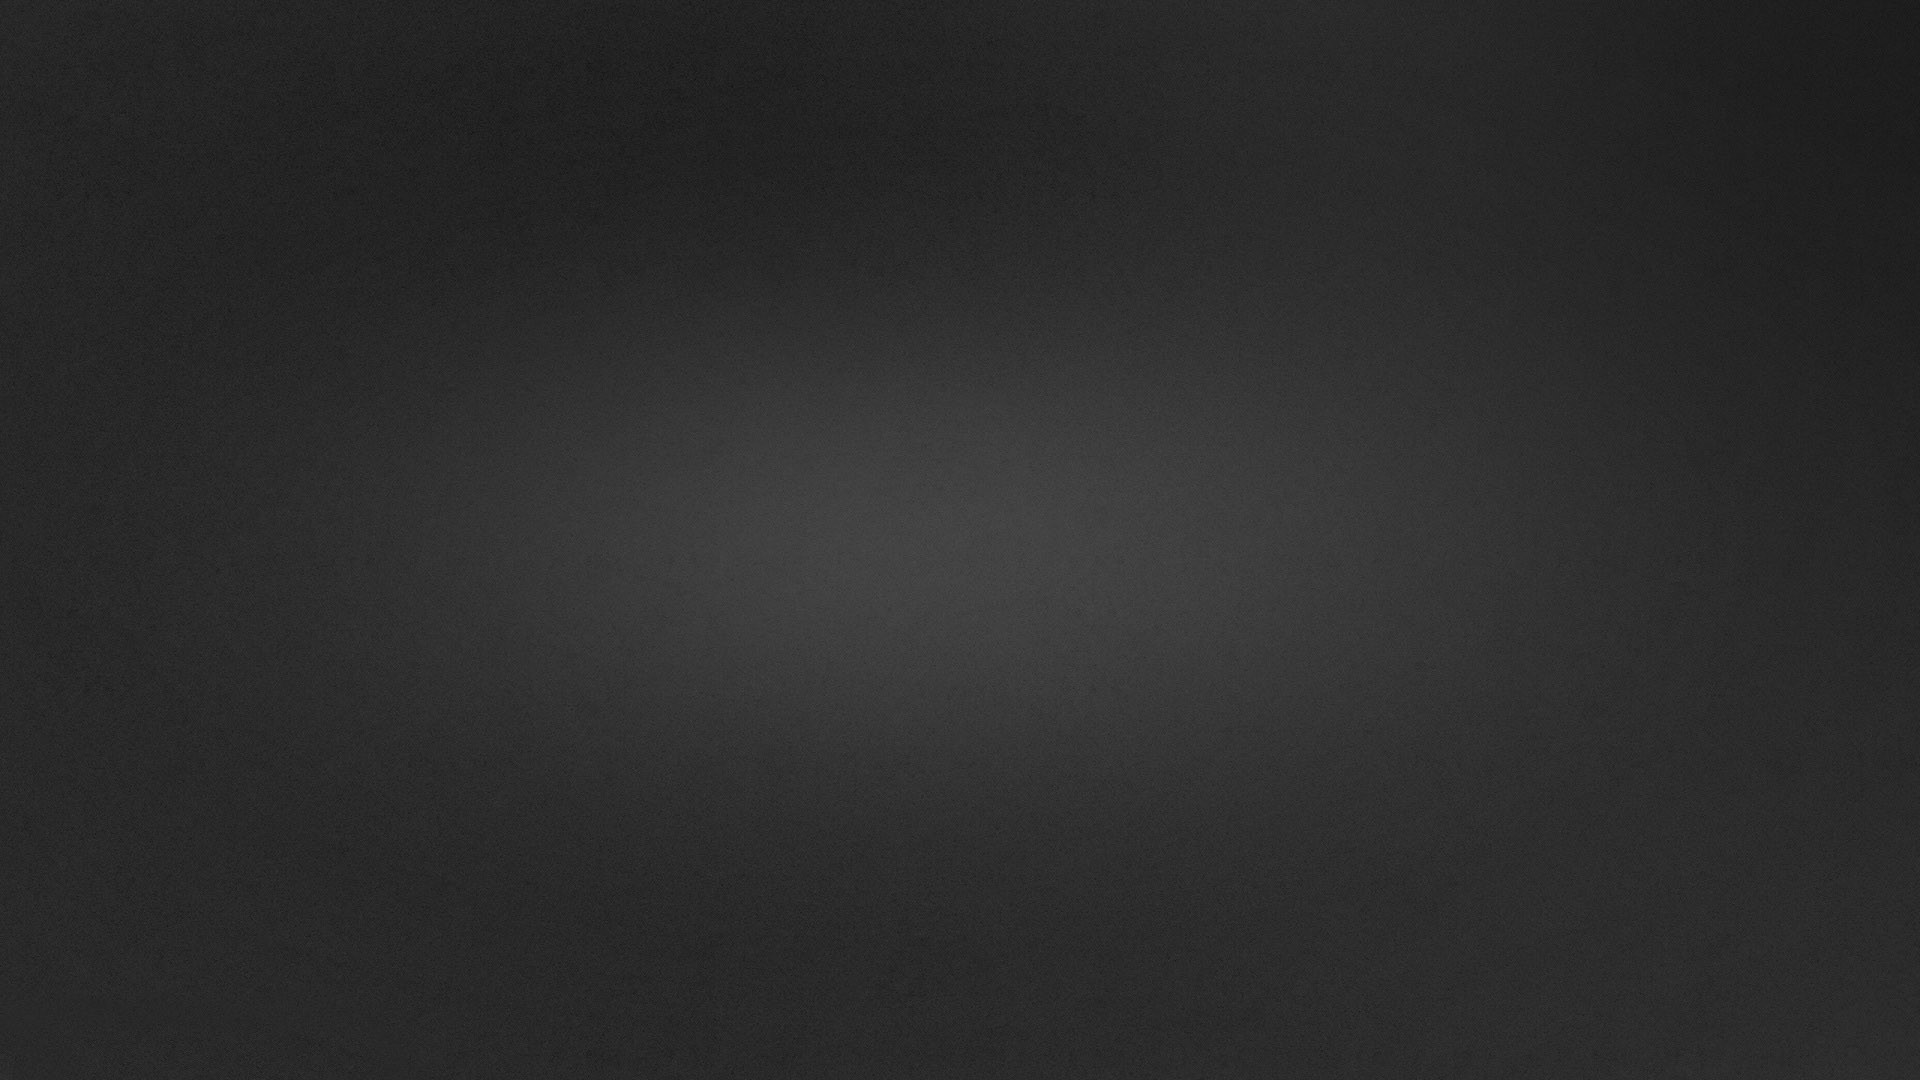 Gray gradient wallpaper 9839 1920x1080